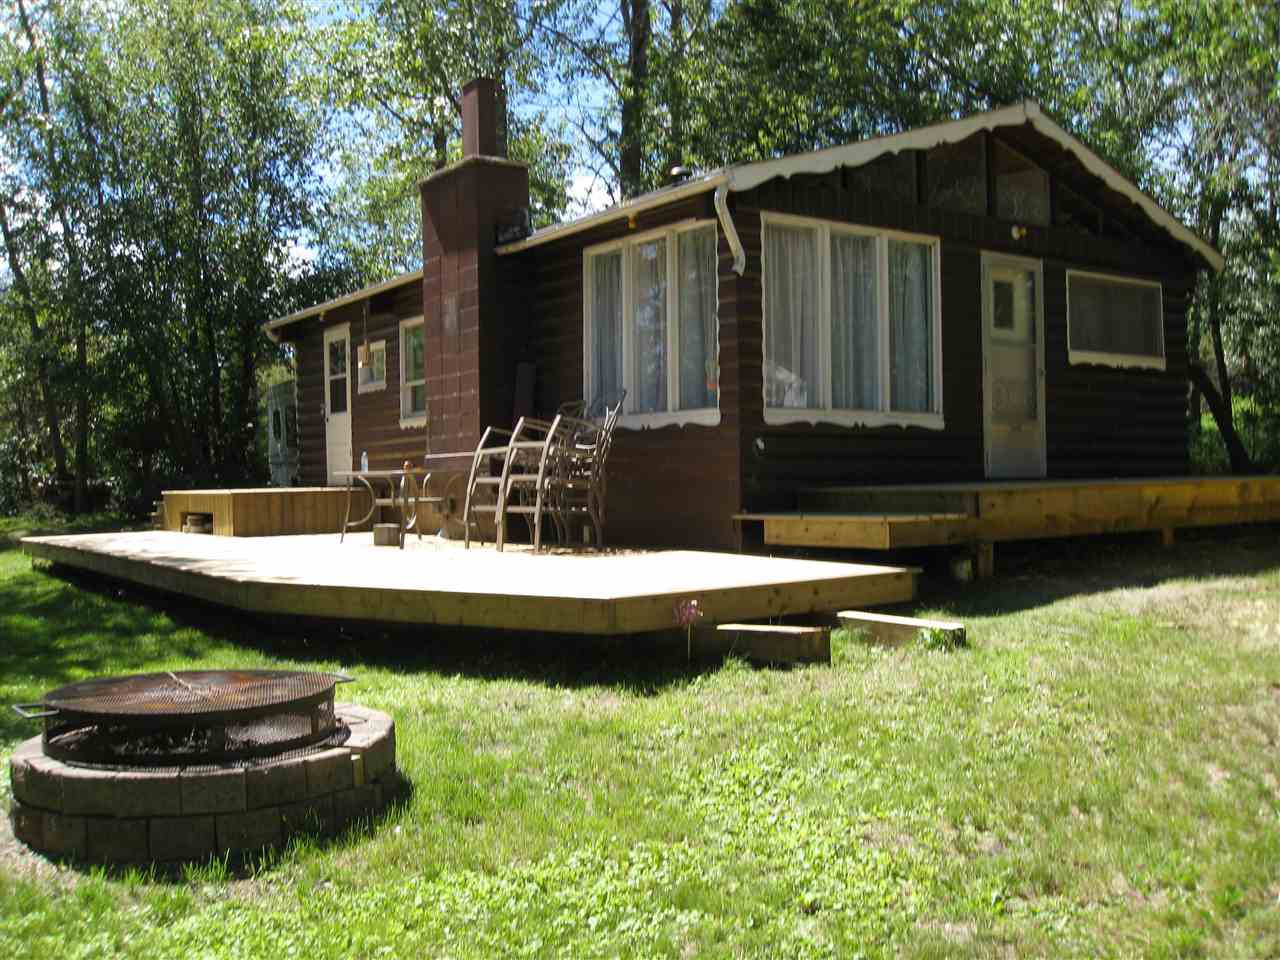 Main Photo: 6101 Willow Way: Rural Lac Ste. Anne County House for sale : MLS®# E4154926